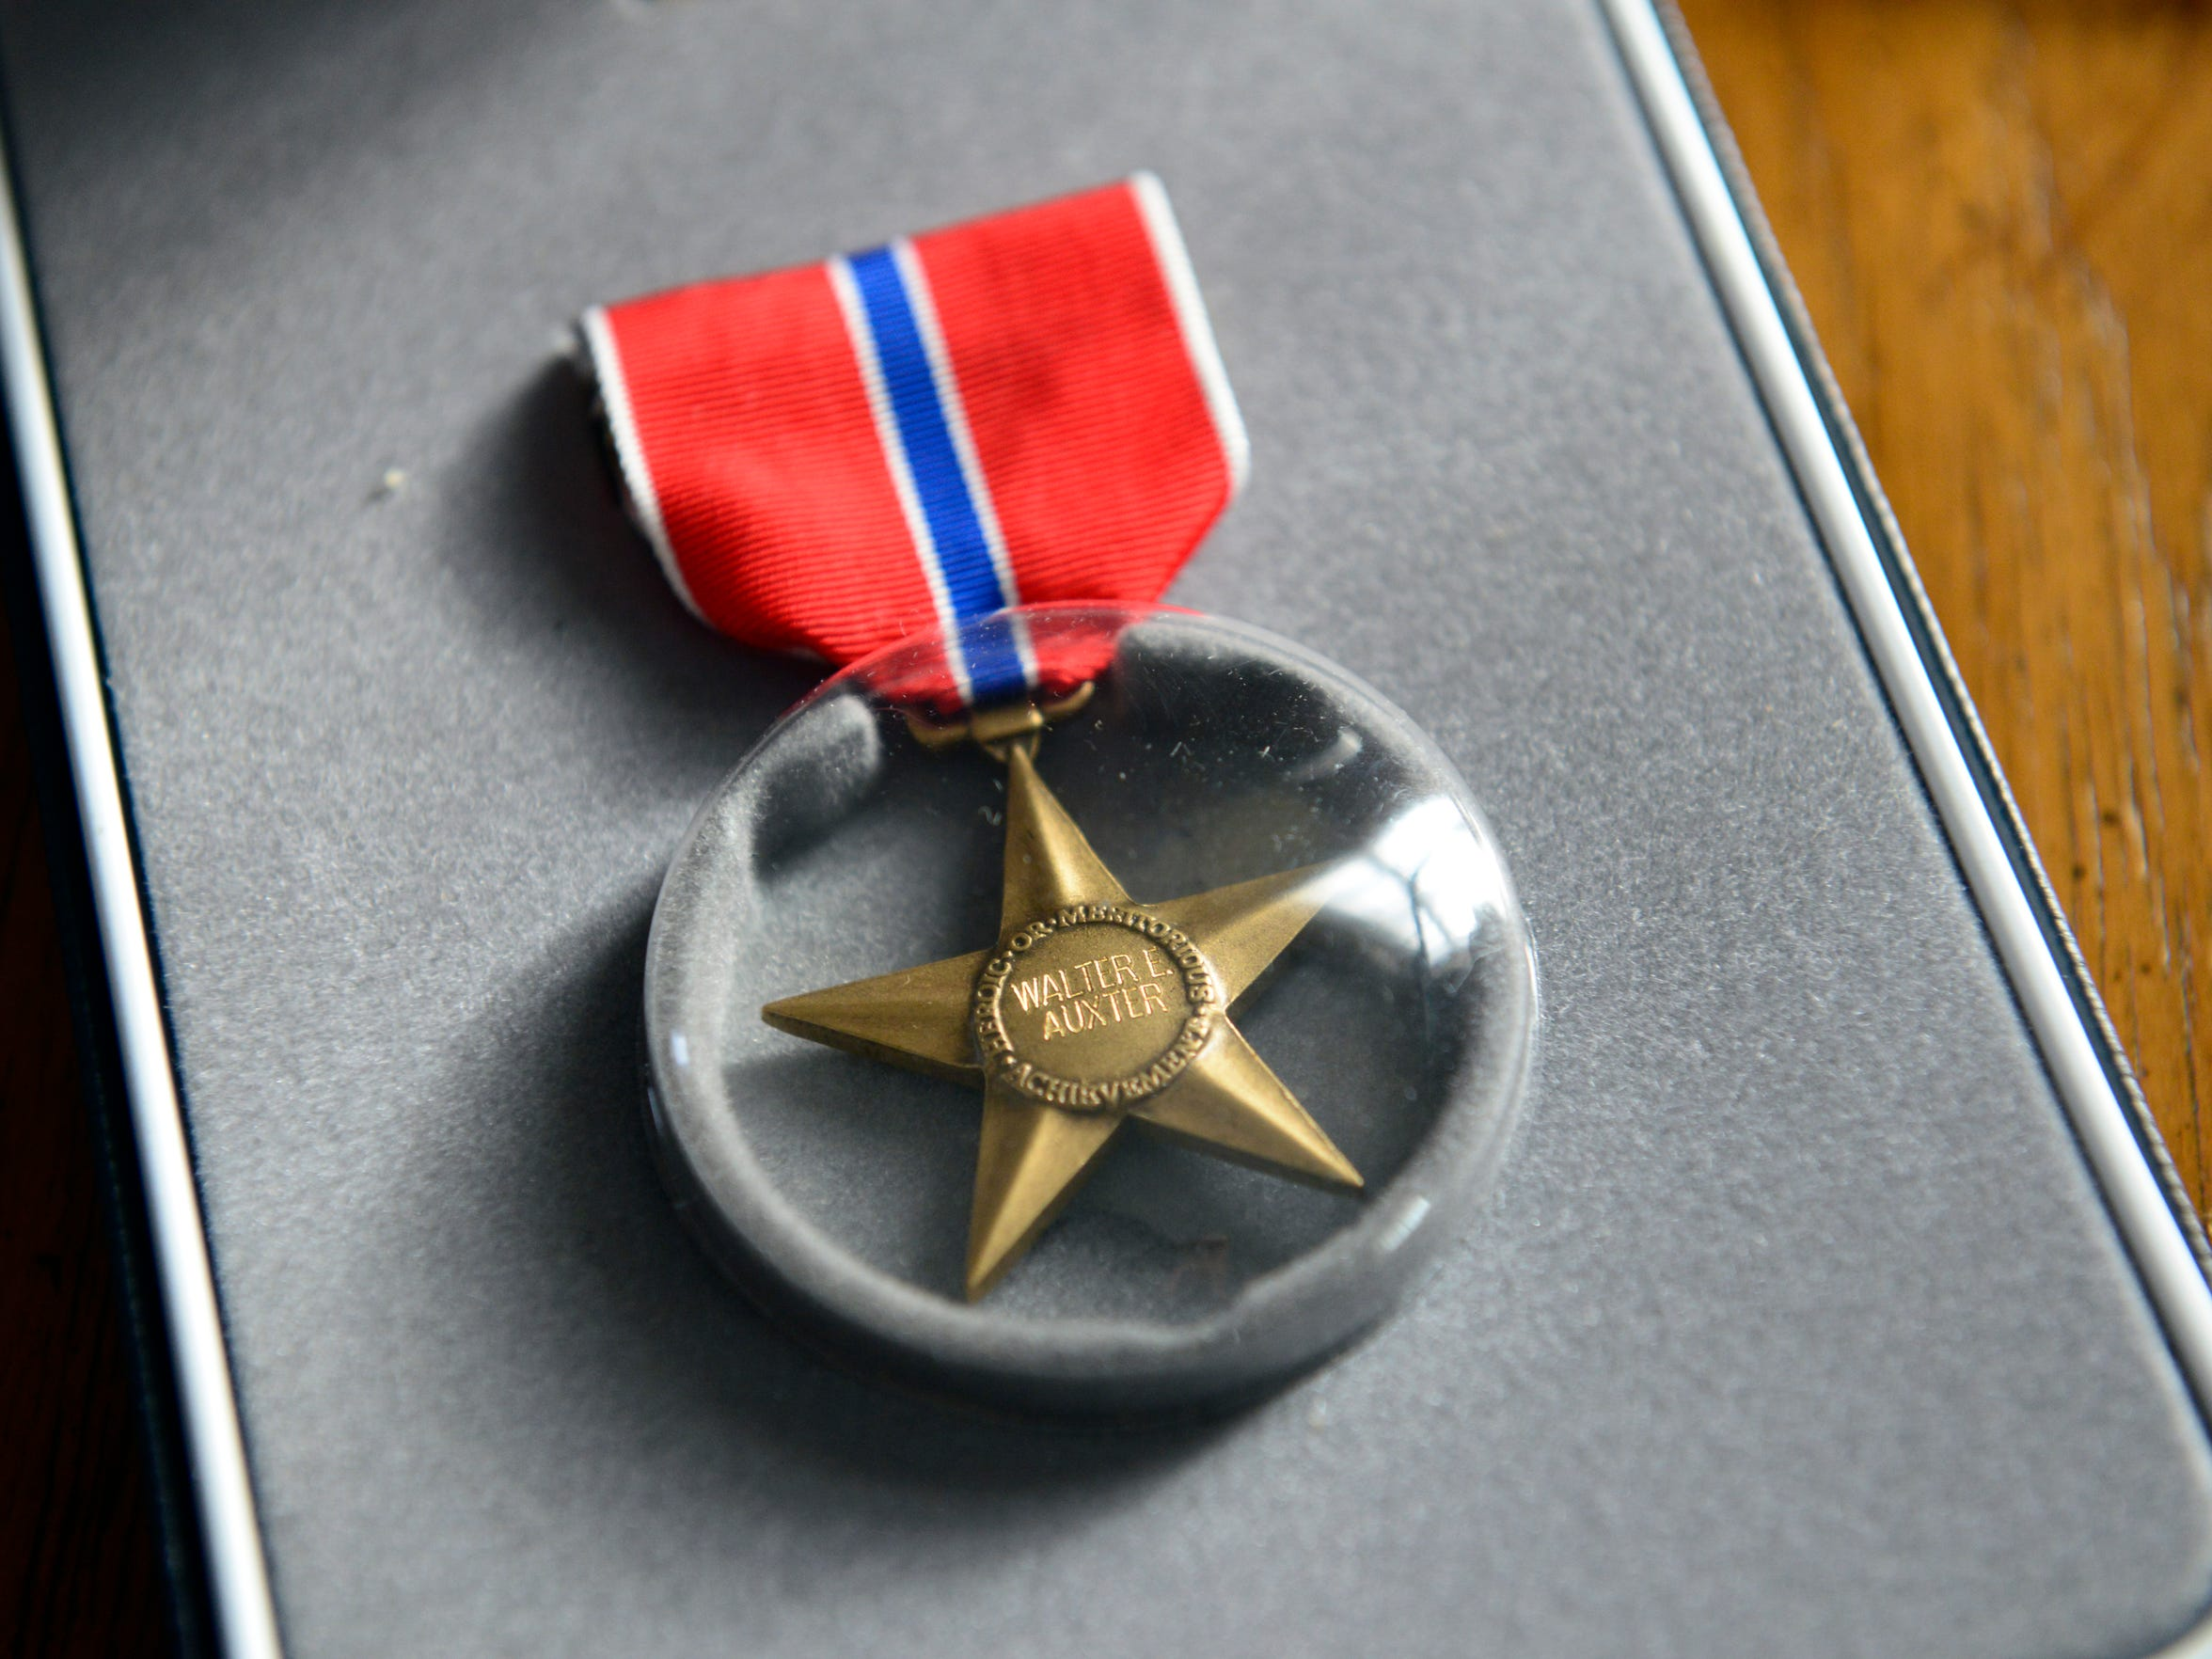 Walter Auxter was awarded The Bronze Star Medal for